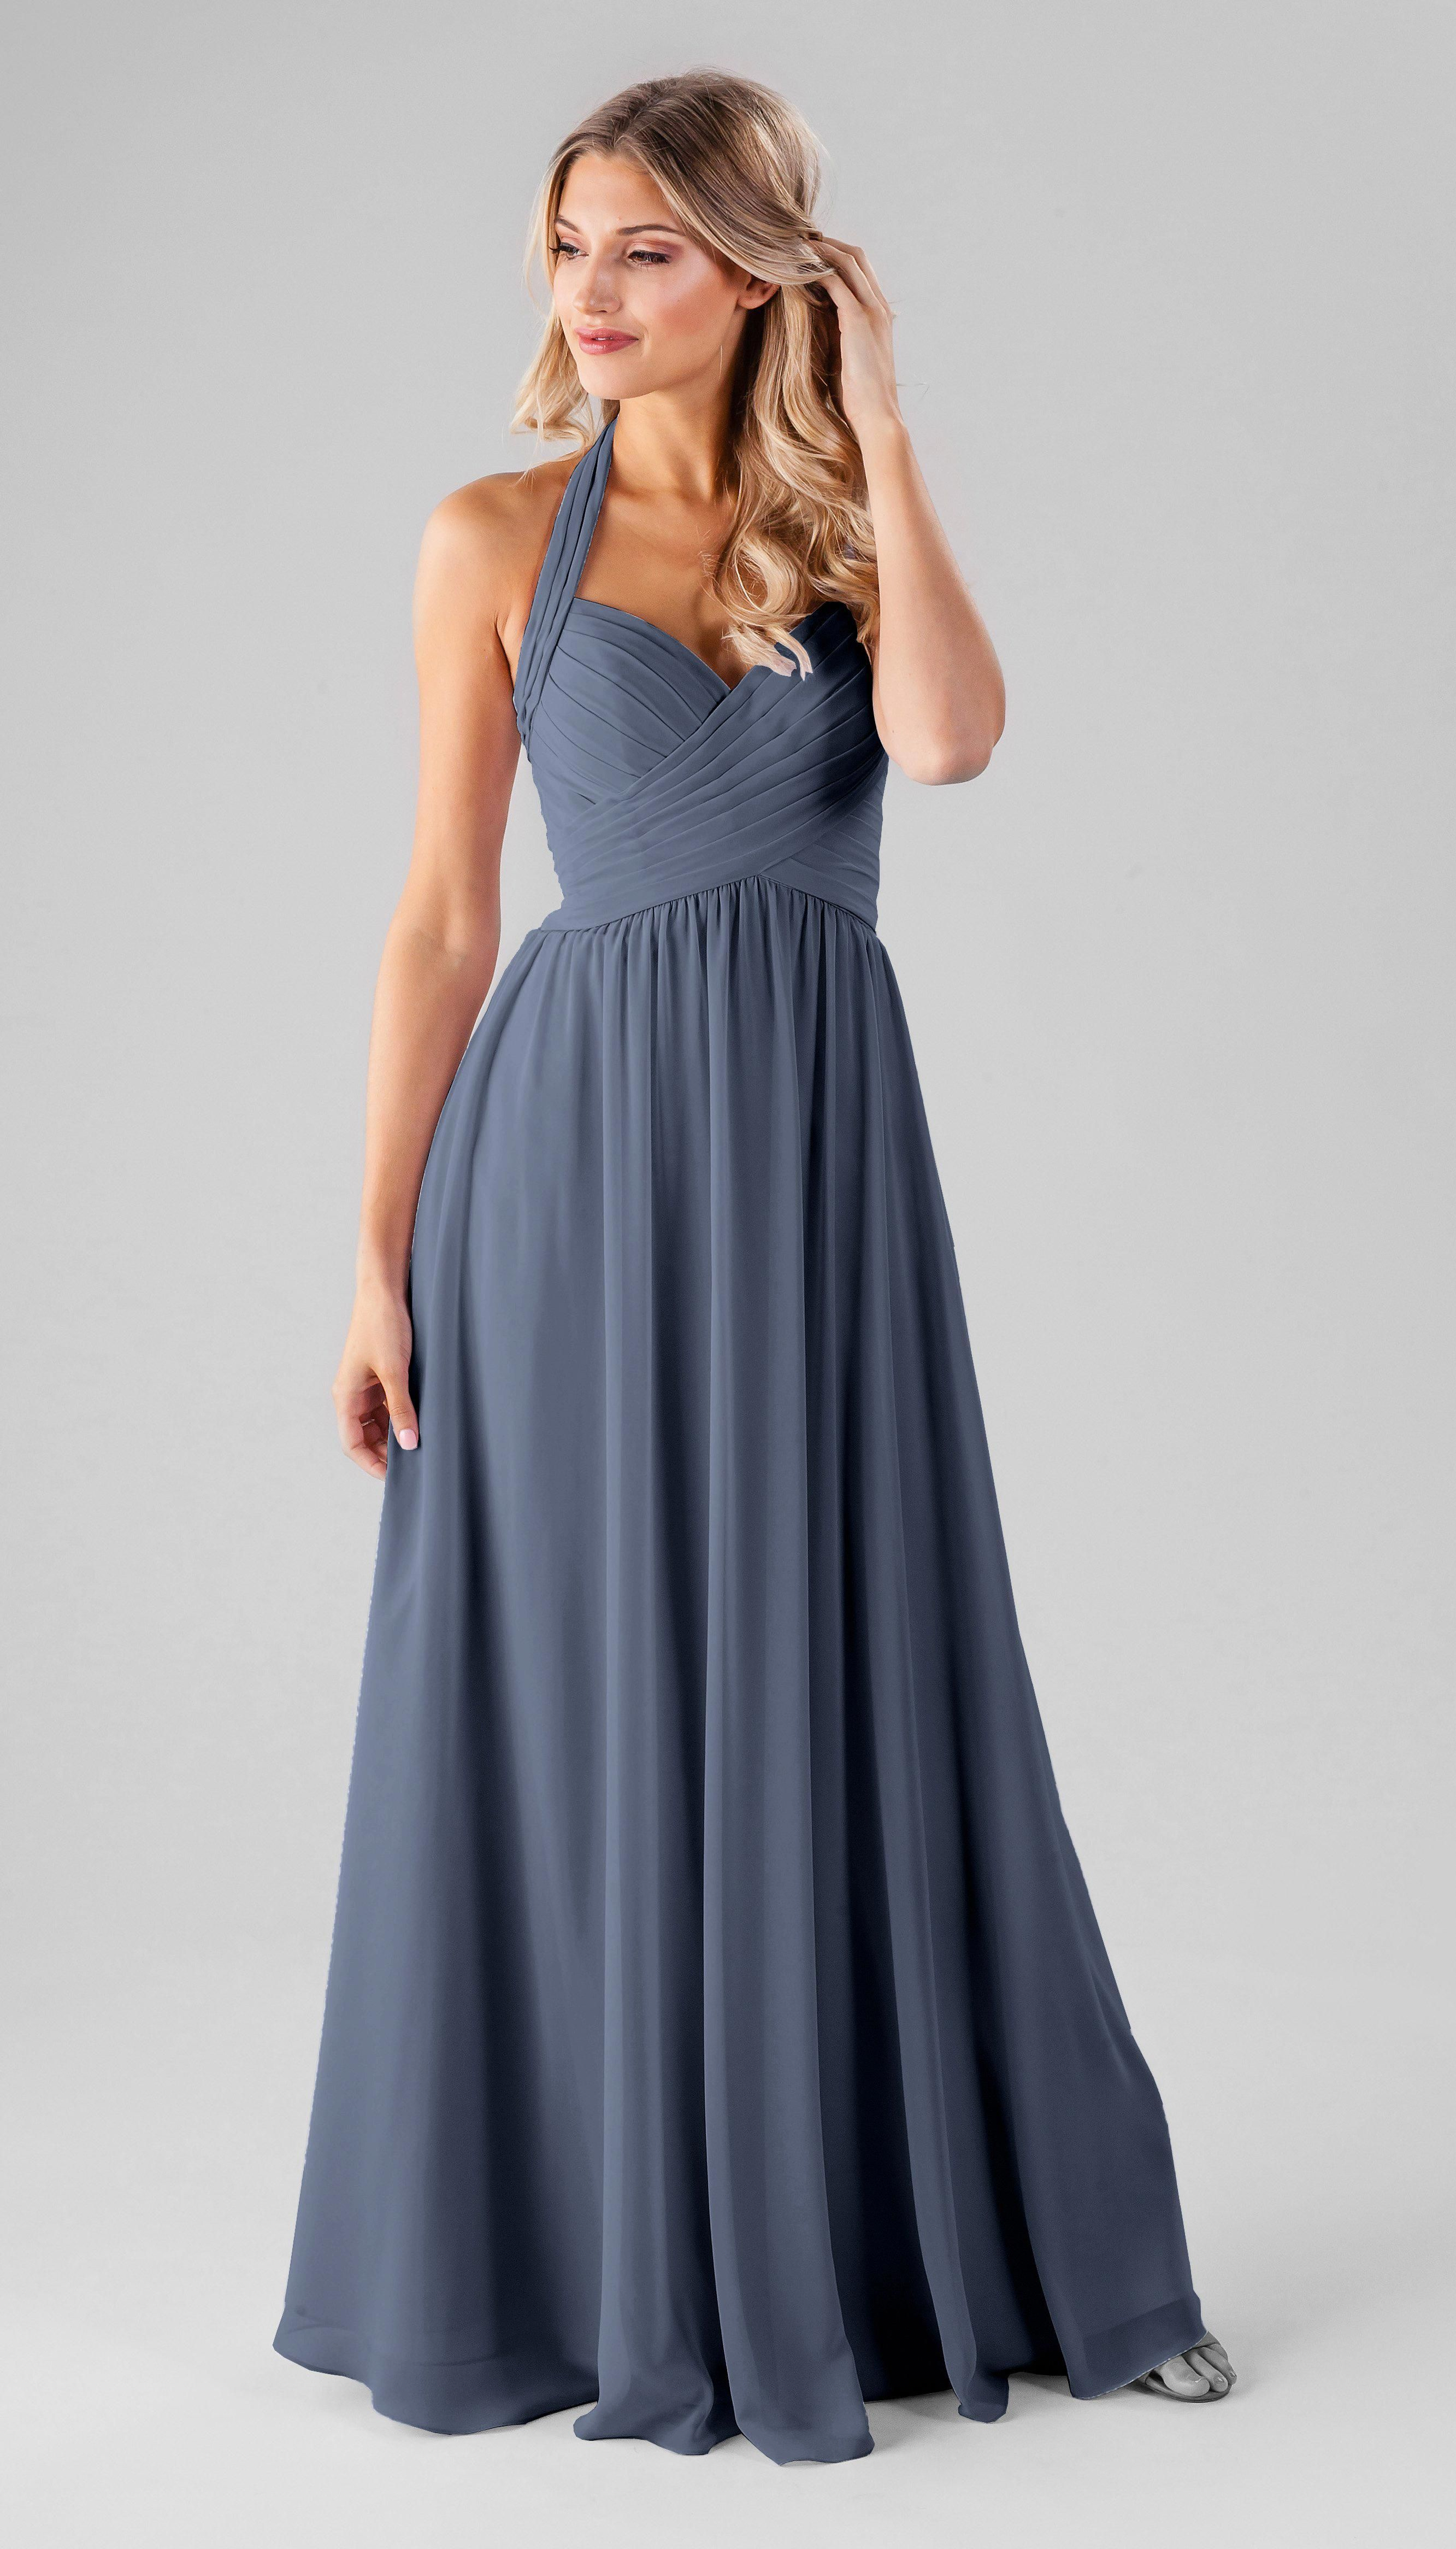 b238d557d0bf Kennedy Blue Ginger Bridesmaid Dress Color  Storm  bridesmaidsdresses